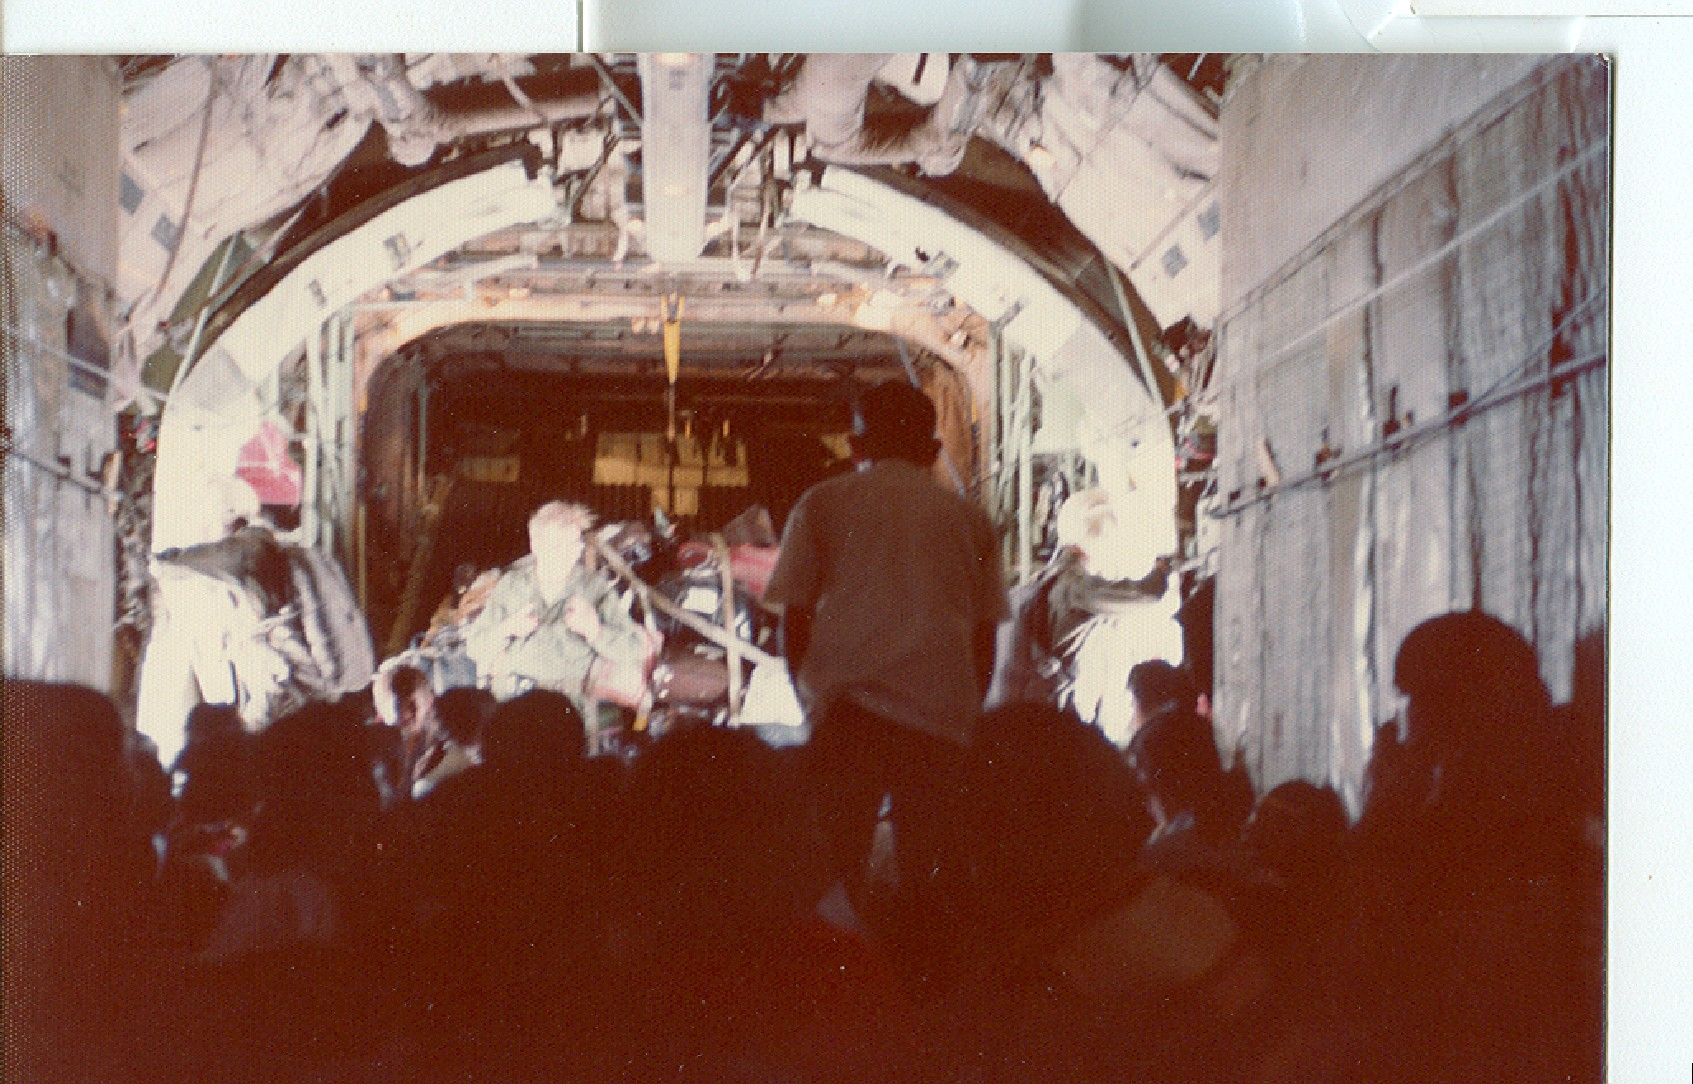 On C-130 climbing out leaving Saigon behind copy